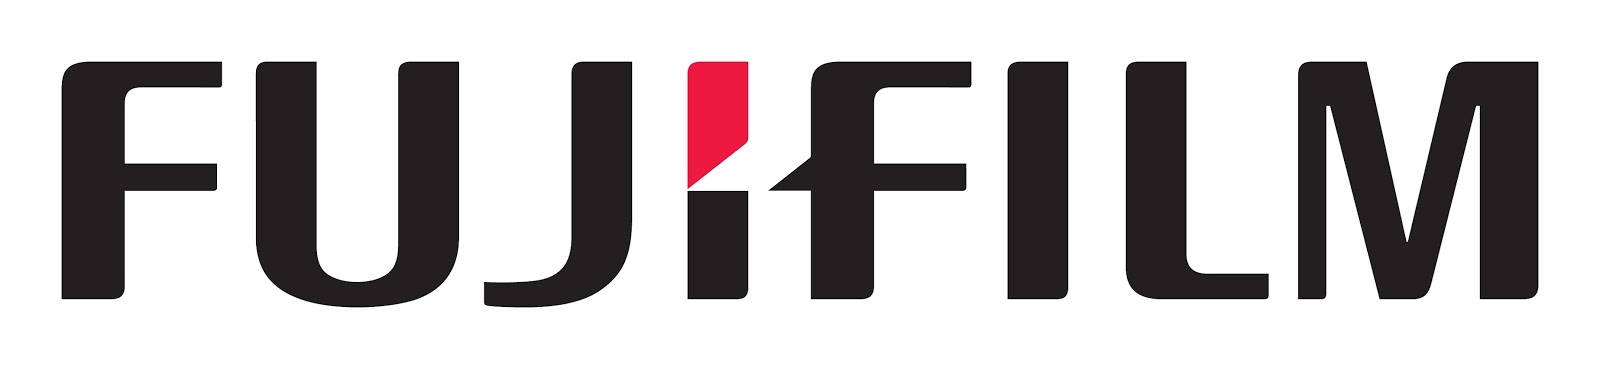 Very Popular Logo Fuji Logo Part 01